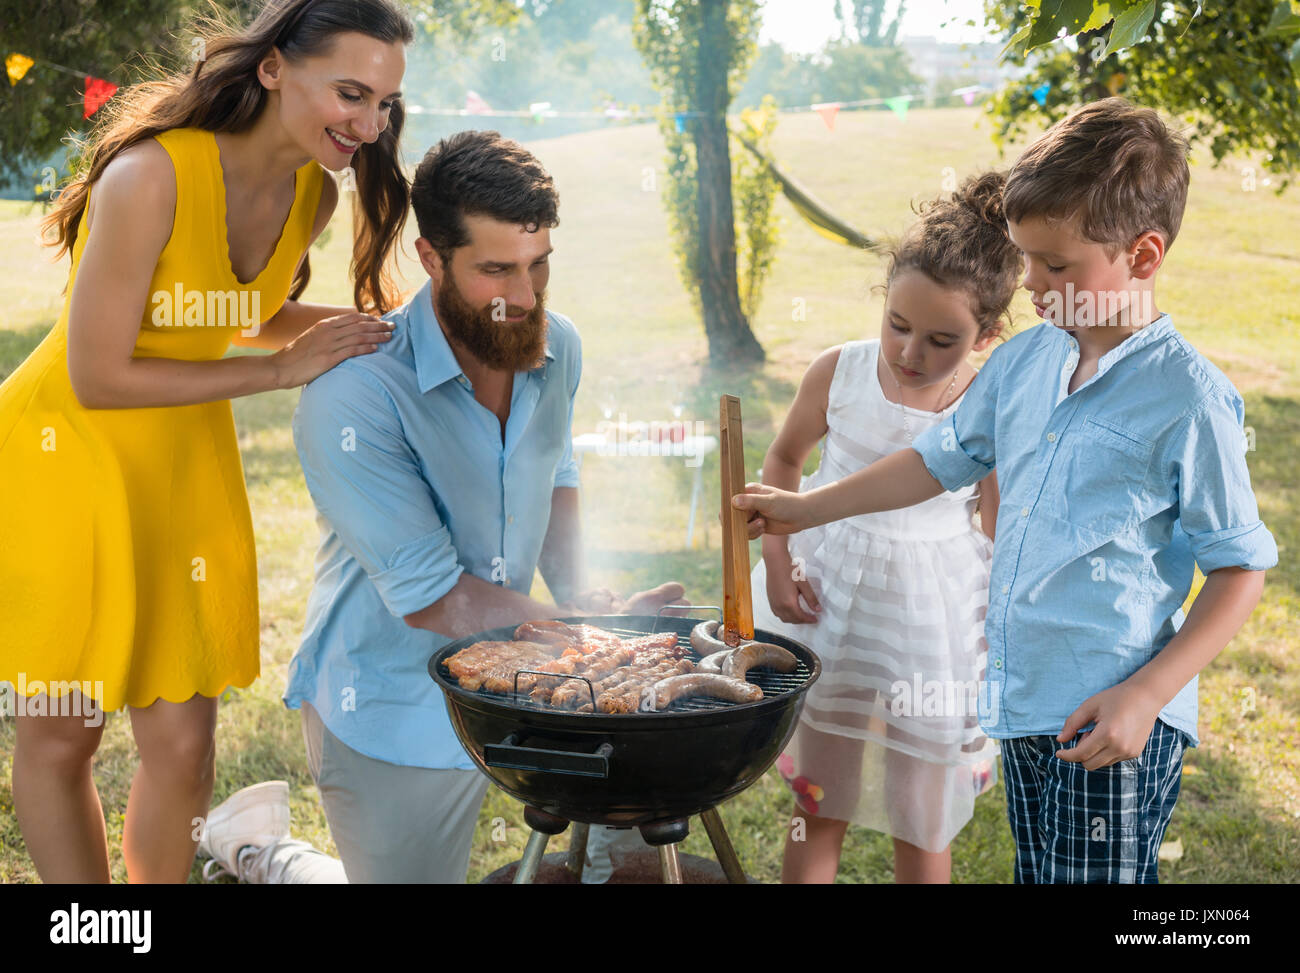 Father and son preparing meat on charcoal barbecue grill during  - Stock Image